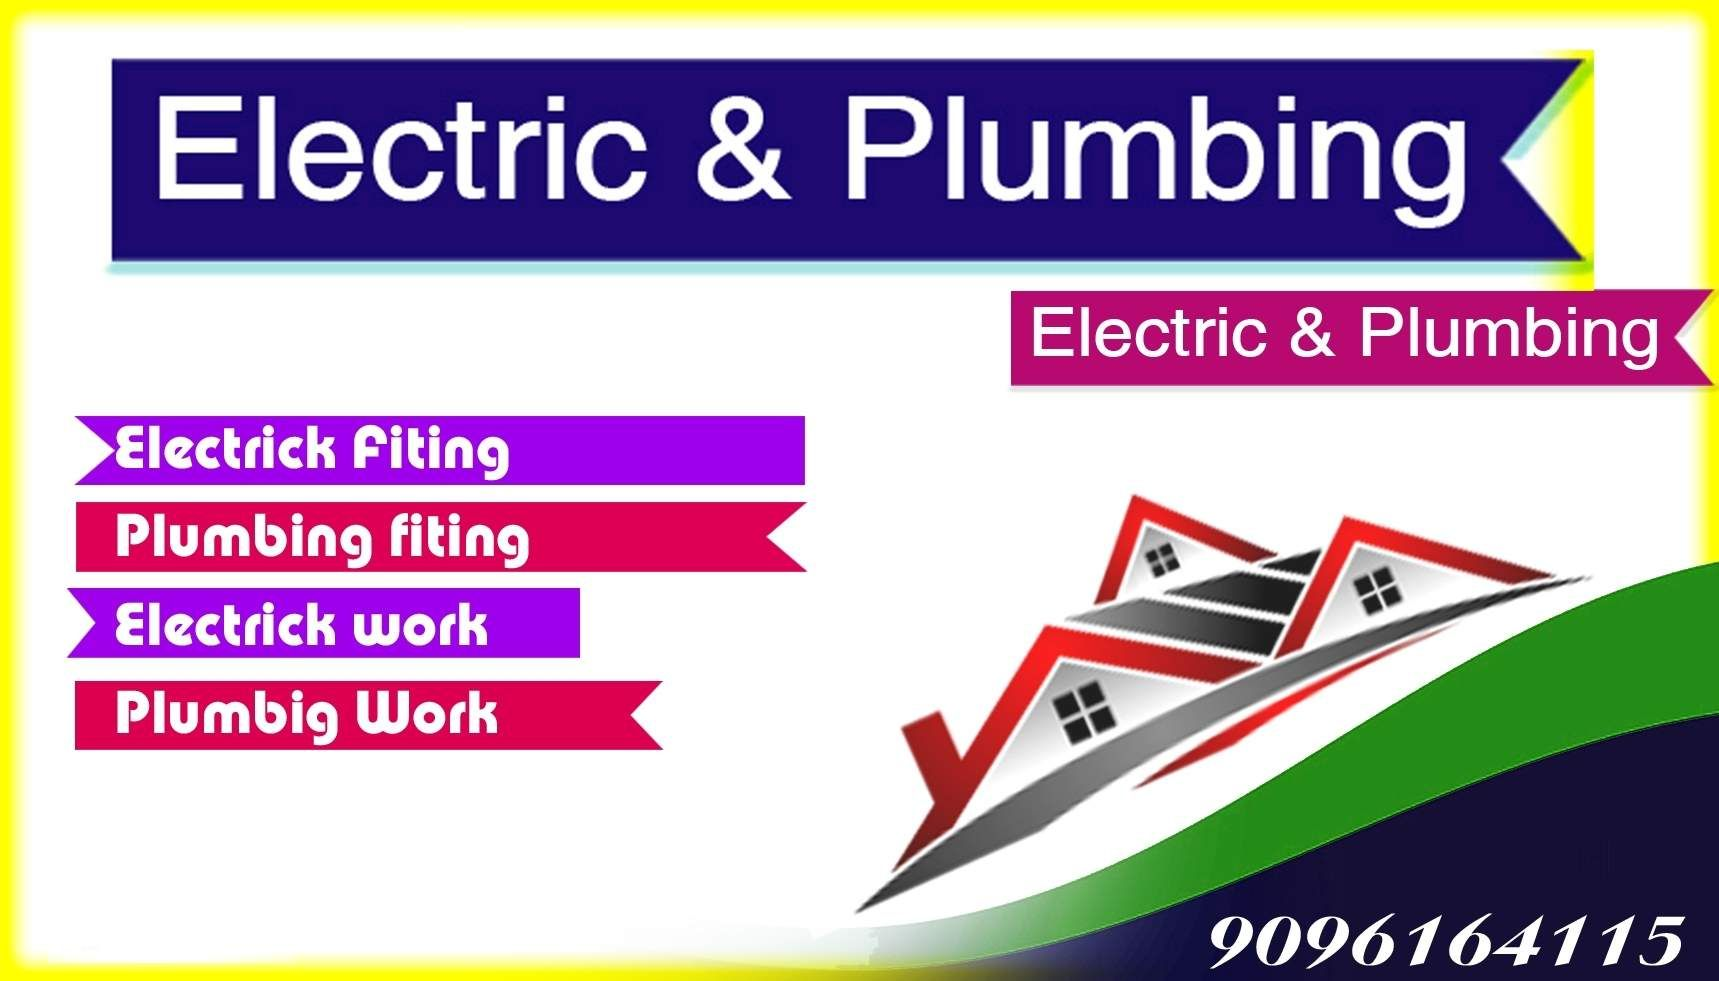 Images Of Electrical And Plumbing Working Google Search Plumbing Electricity Image